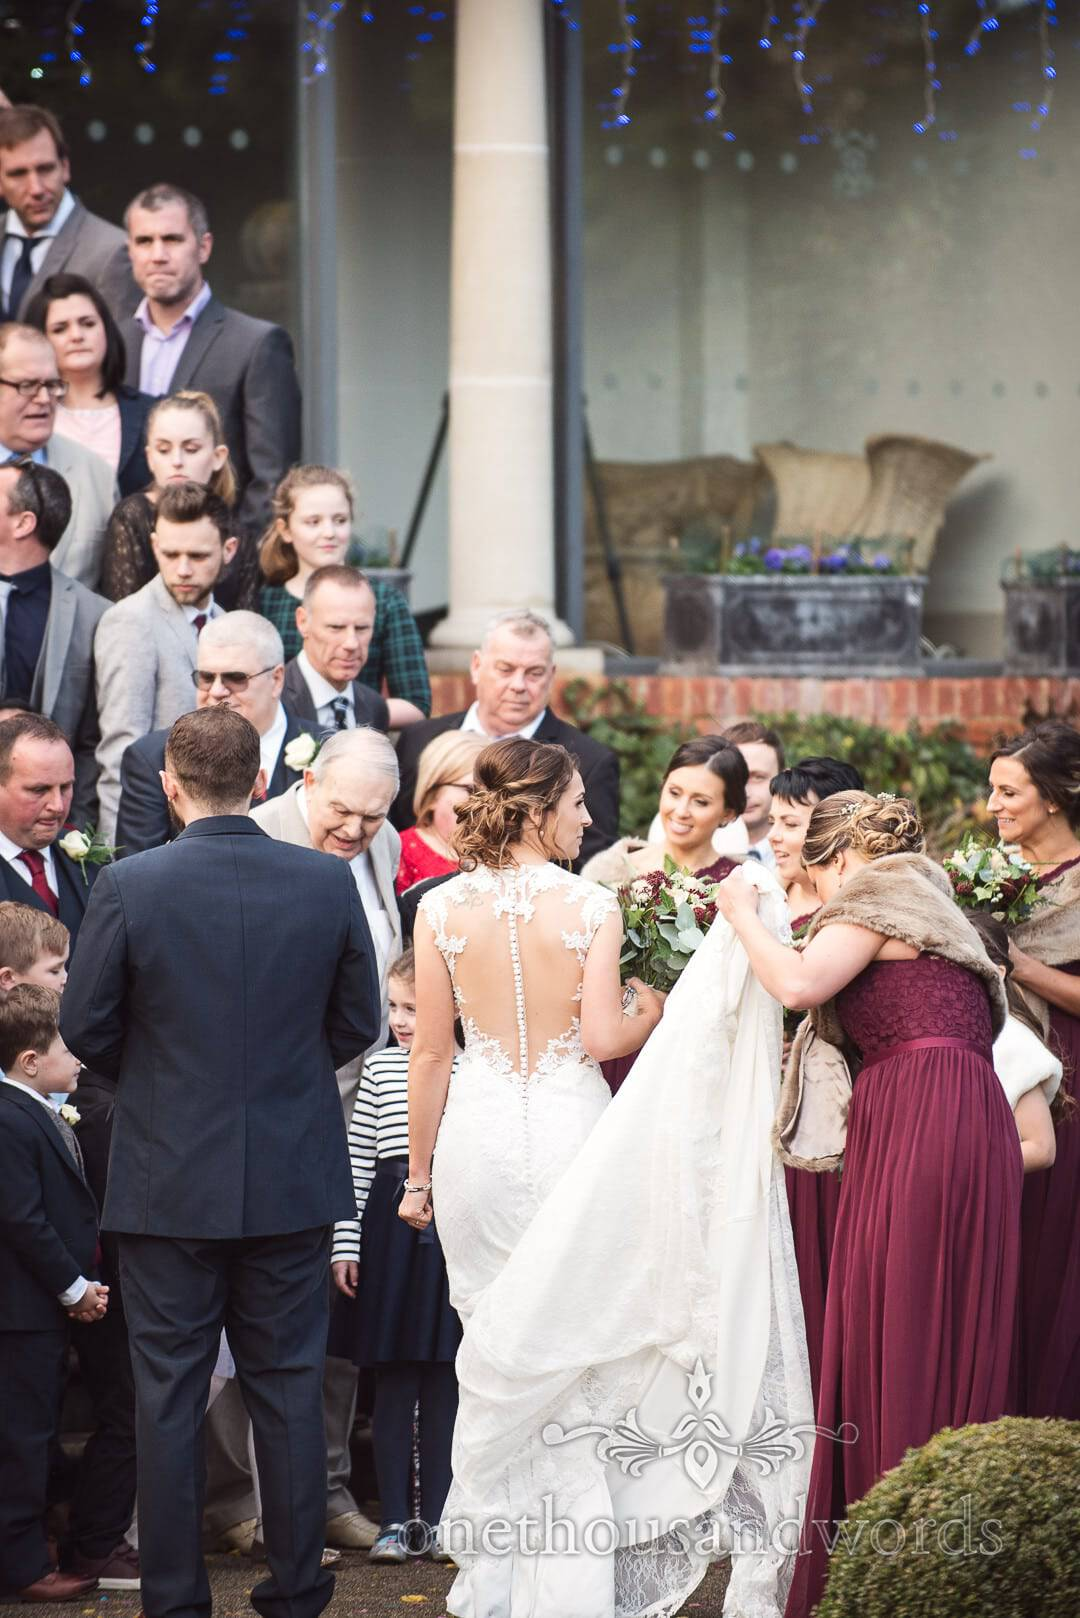 Bride with groom and bridesmaids as guest gather for group photograph at Italian Villa wedding photos